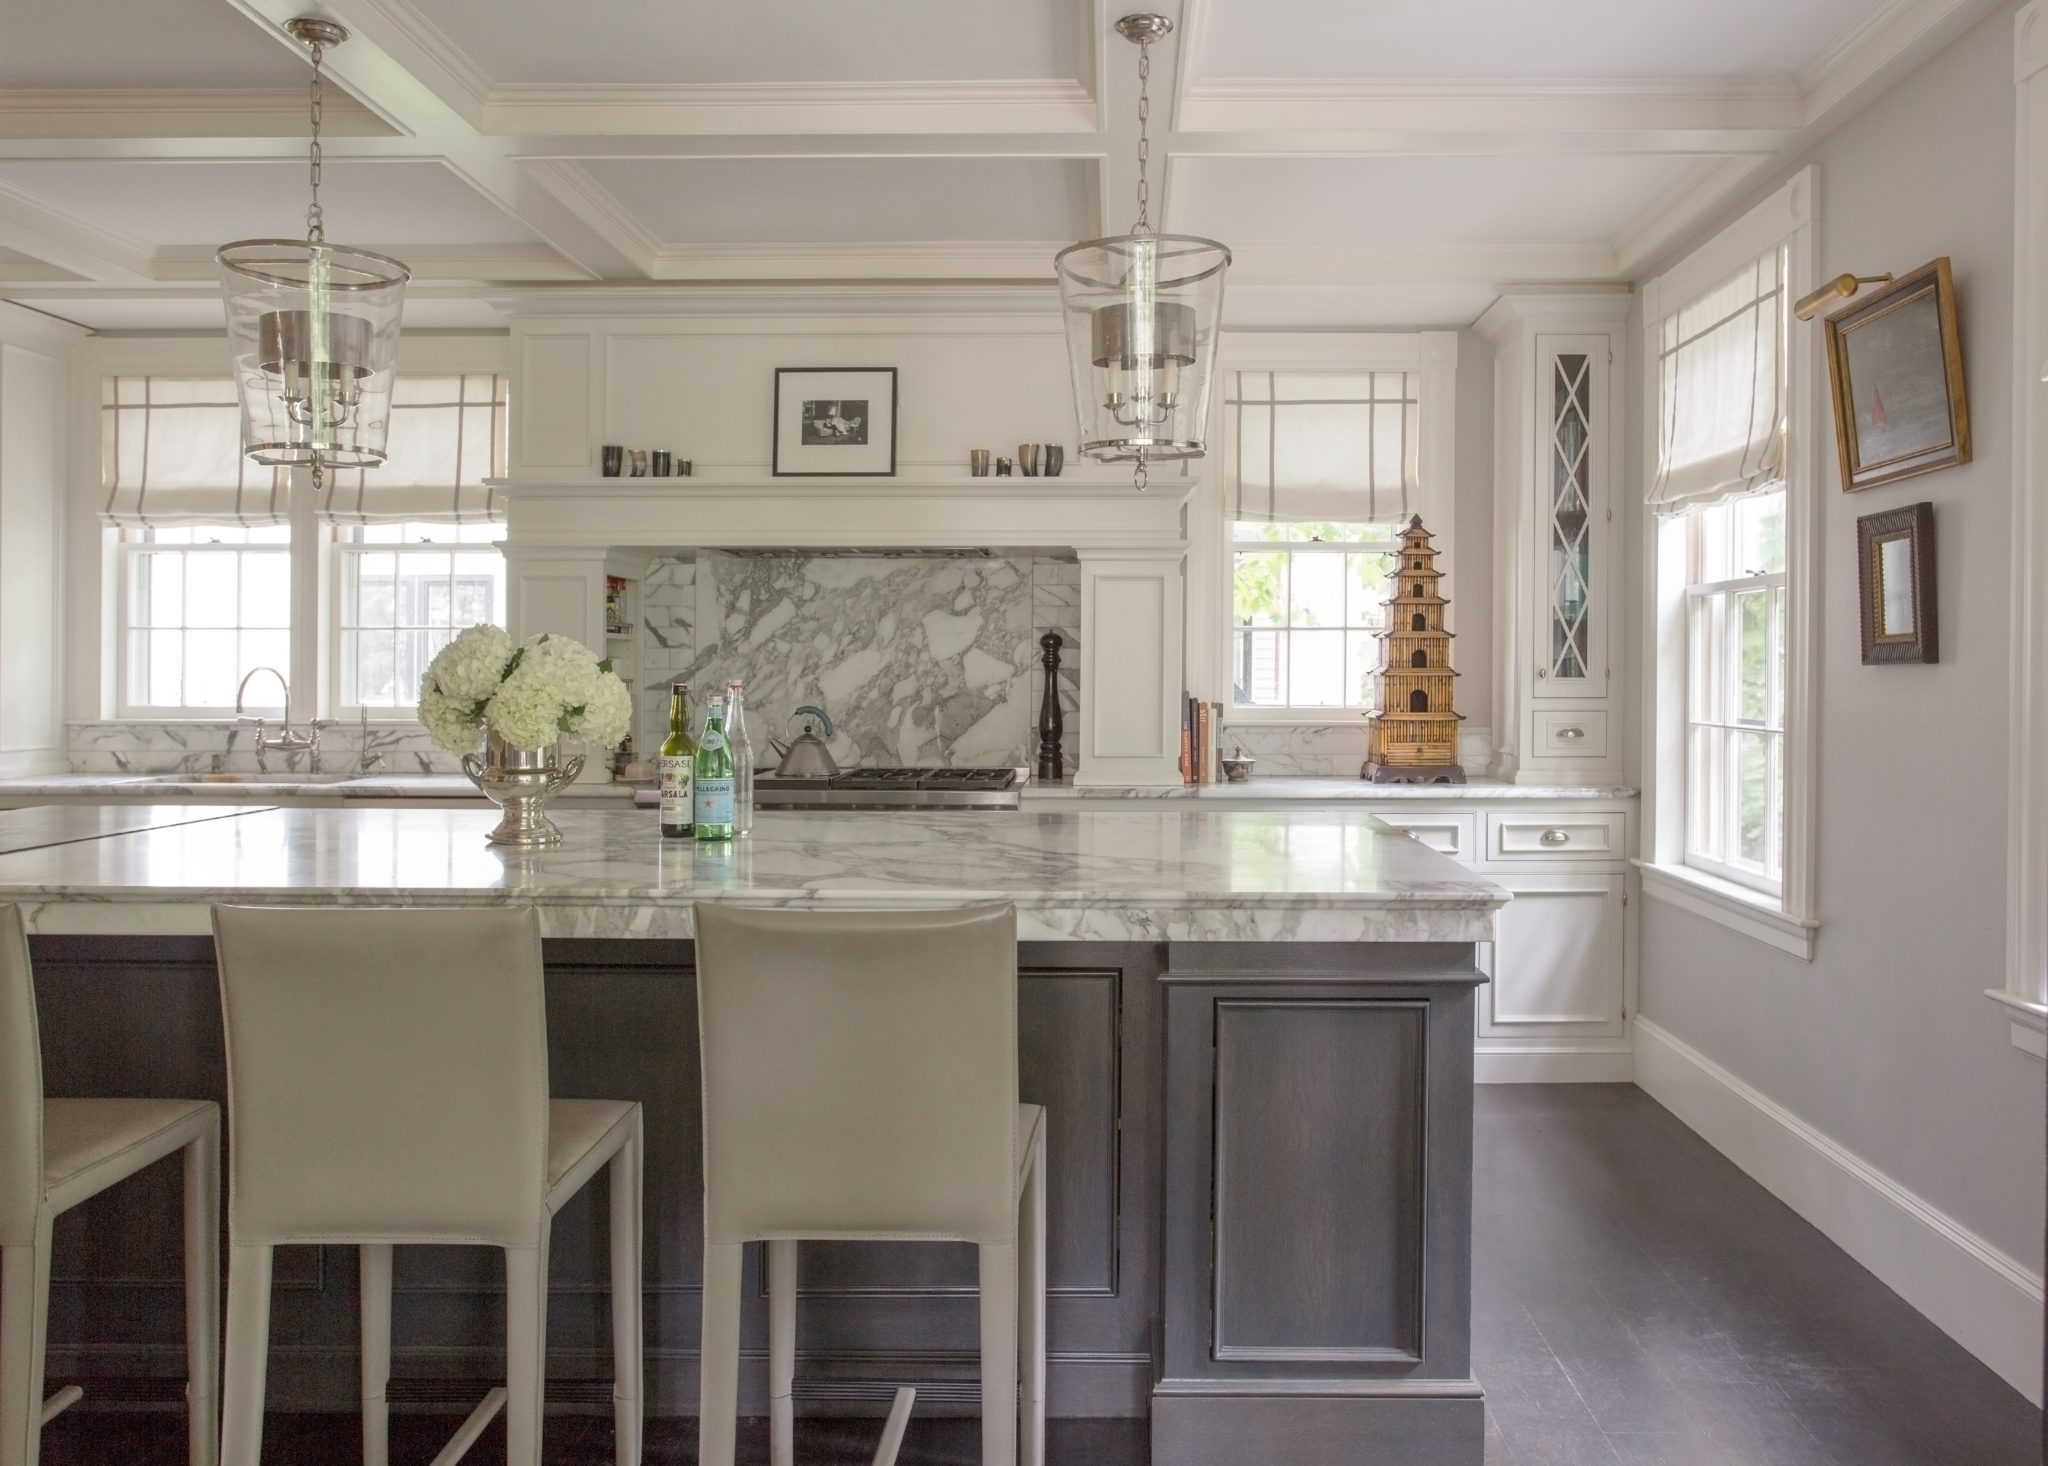 Traditional Harvard Square kitchen with coffered ceiling by Kristin Paton Interiors